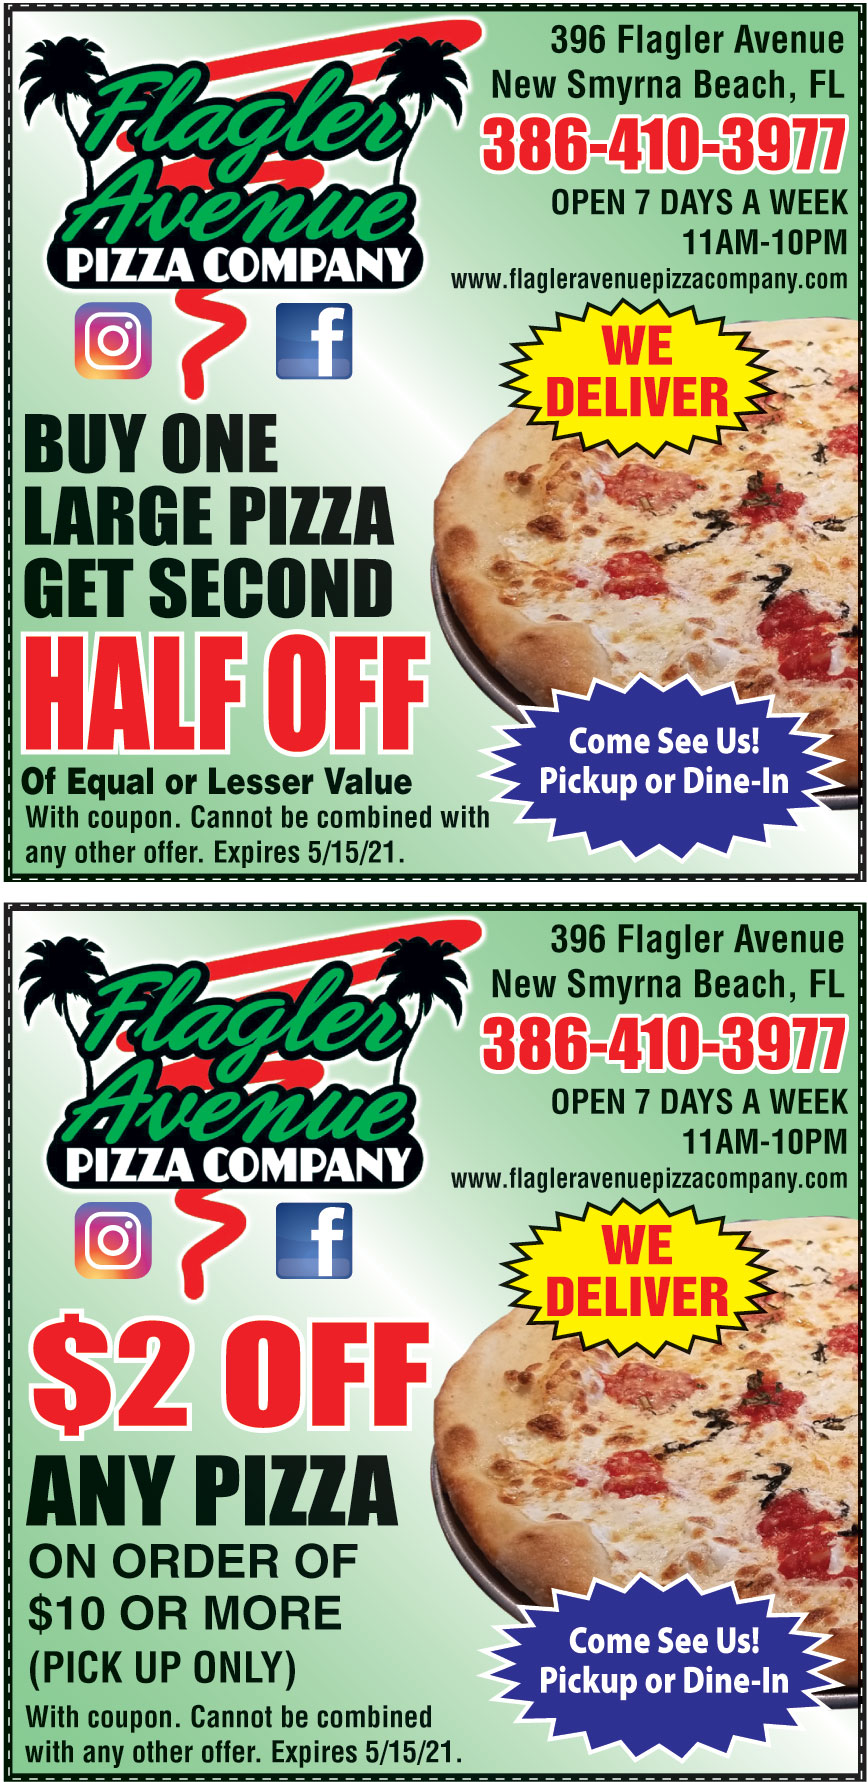 FLAGLER AVENUE PIZZA